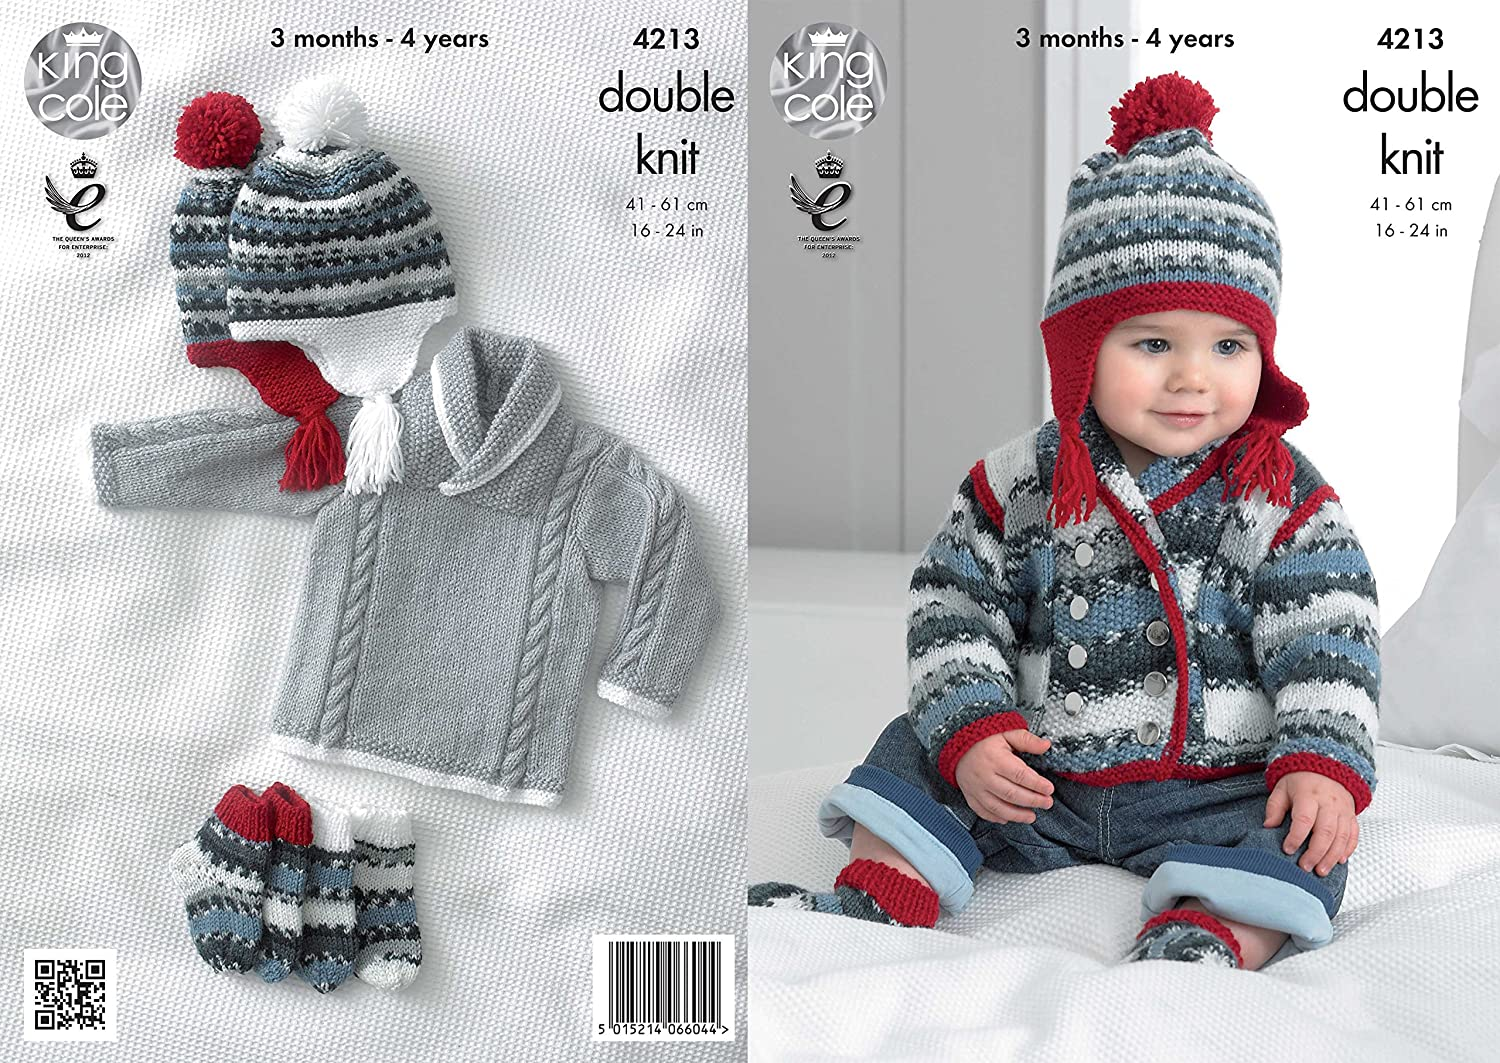 205ac1006a1 Knitting pattern  How to make a bobble hat - Mollie Makes